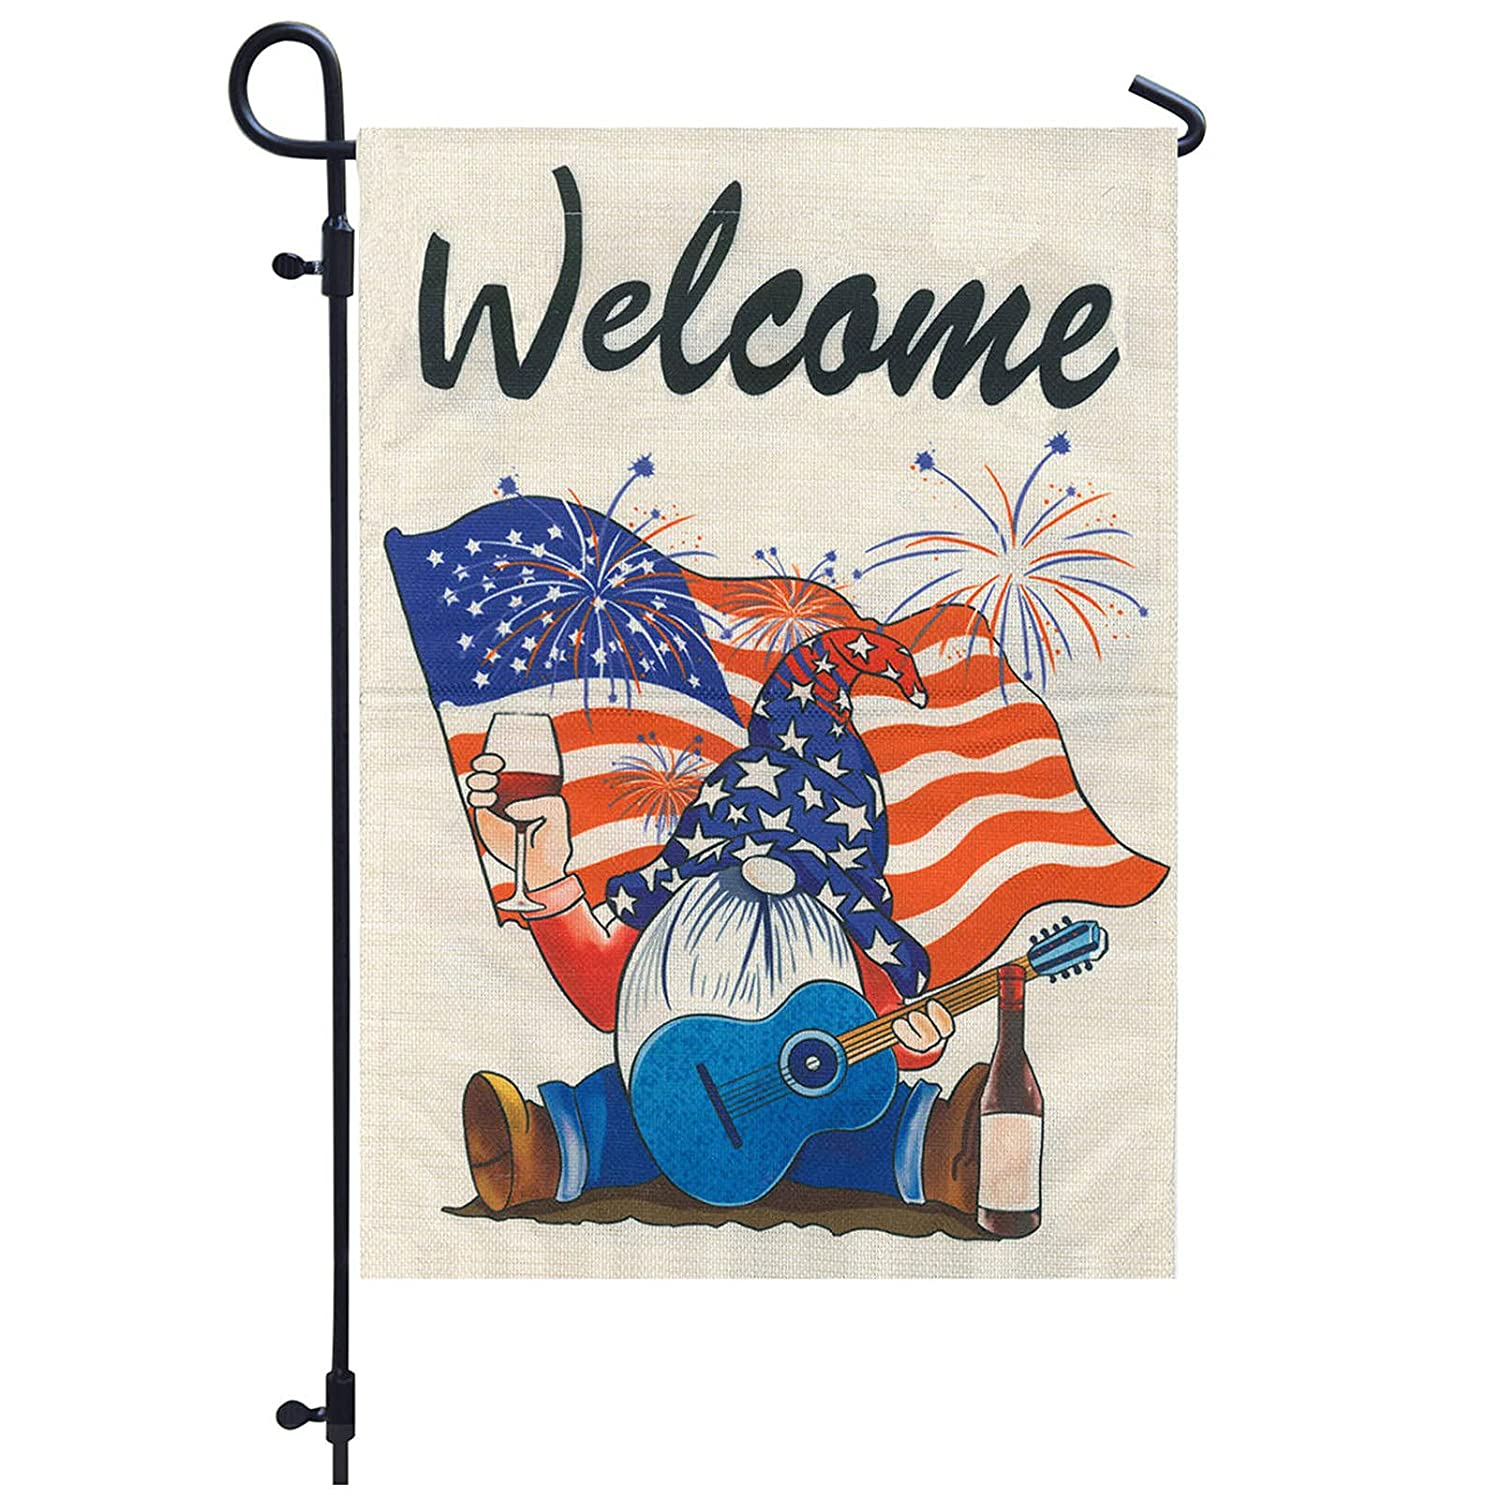 LHOYIR Welcome Gnomes Garden Flag Columbus Mall Special price for a limited time Pat American July 4th Of